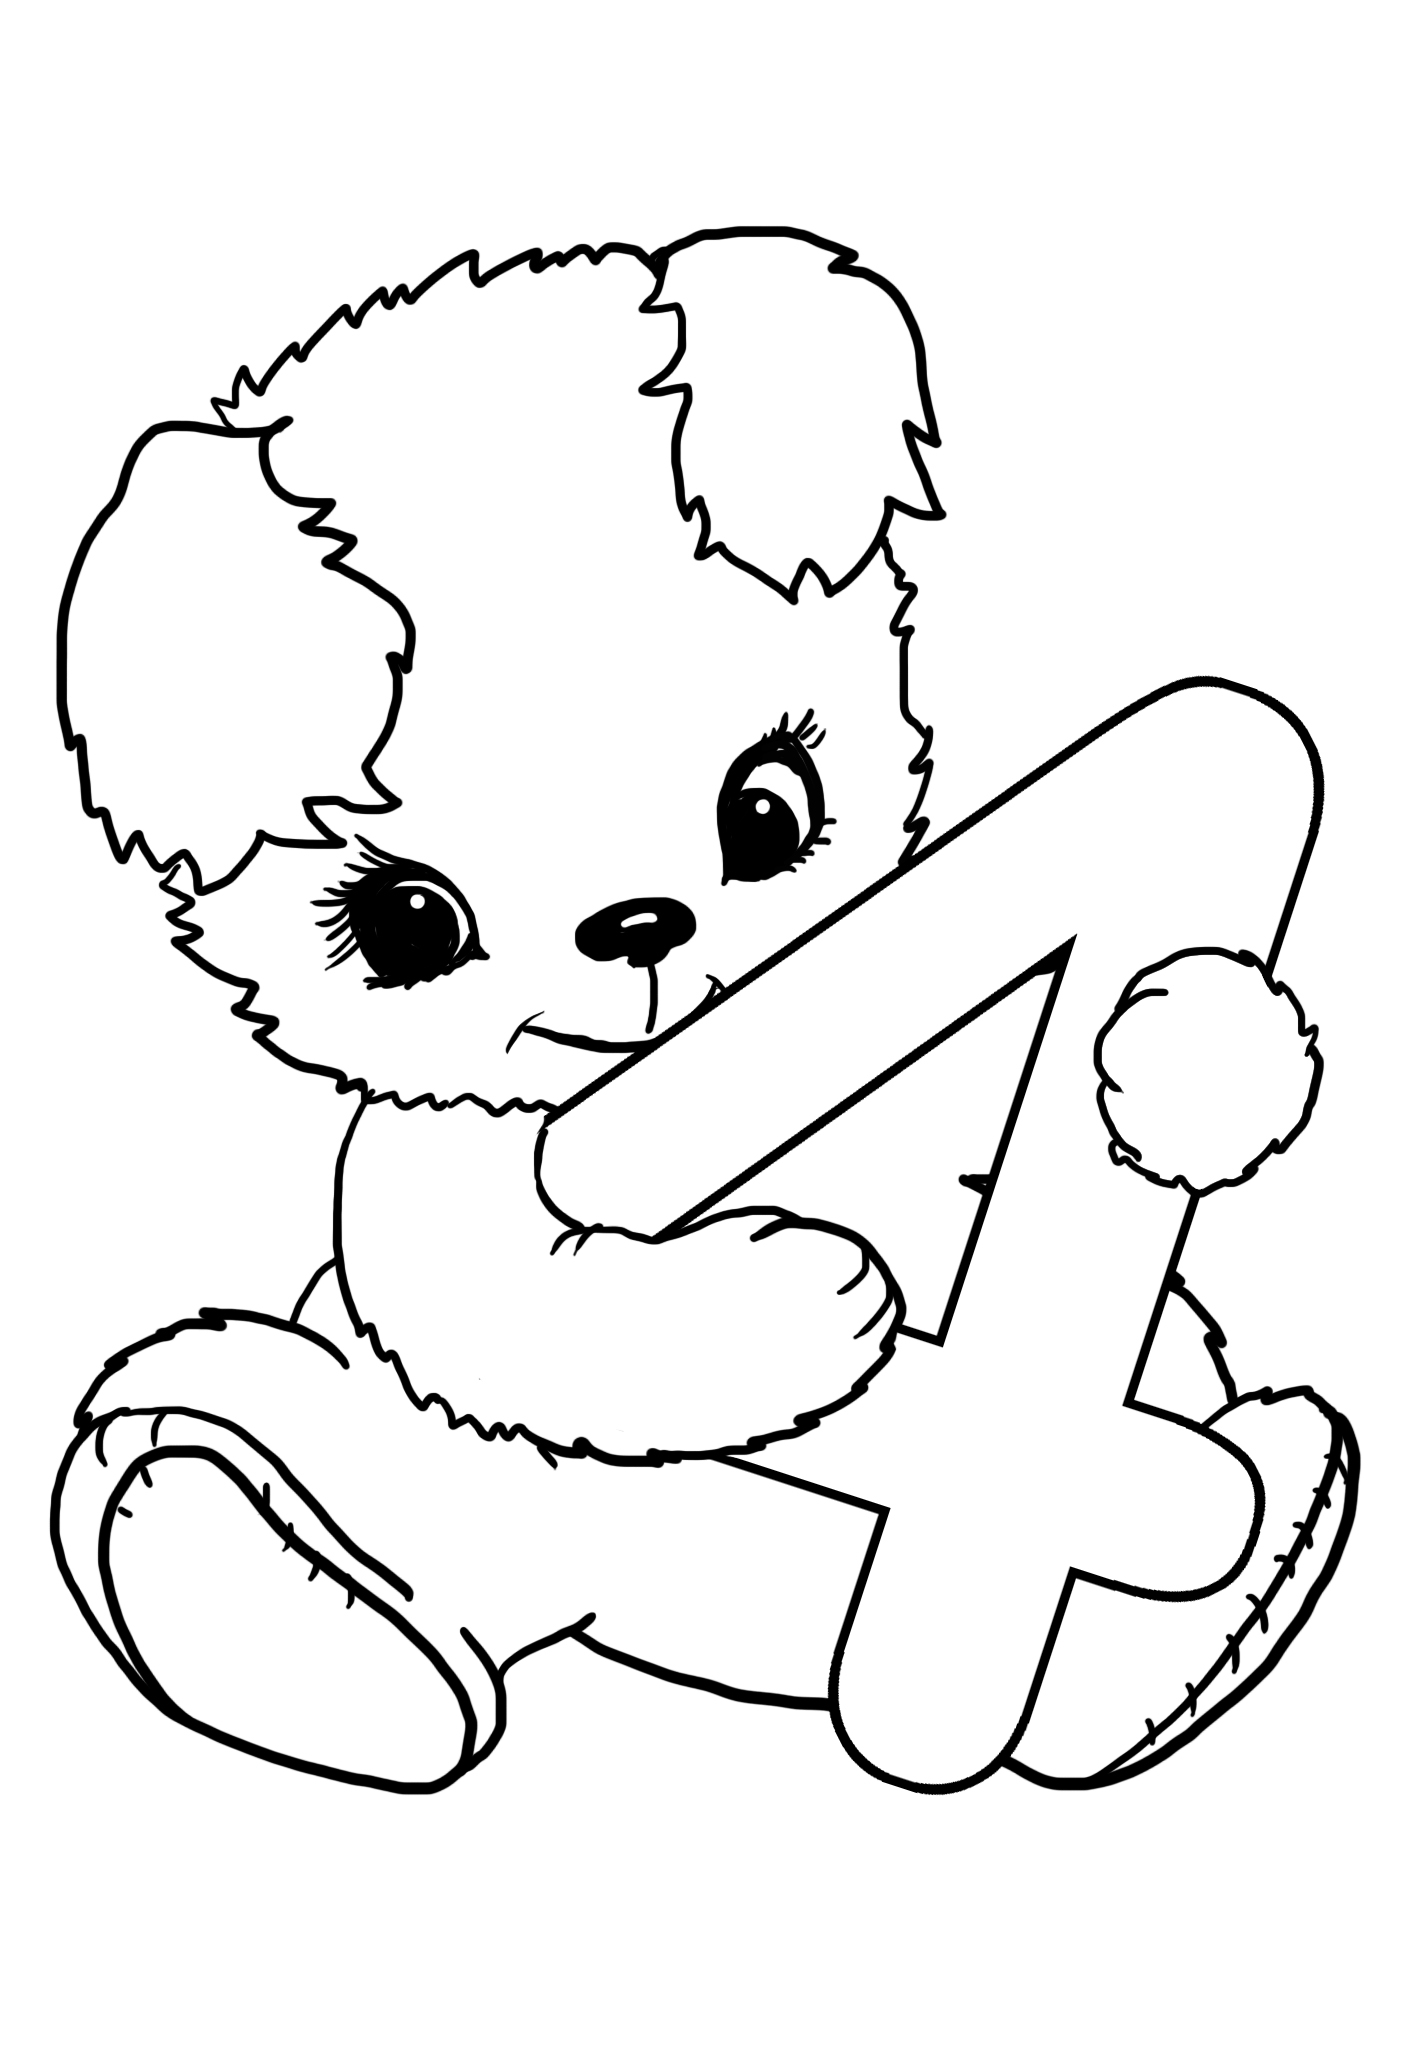 happy 4th birthday coloring pages happy 4th birthday coloring pages at getcoloringscom coloring happy 4th birthday pages